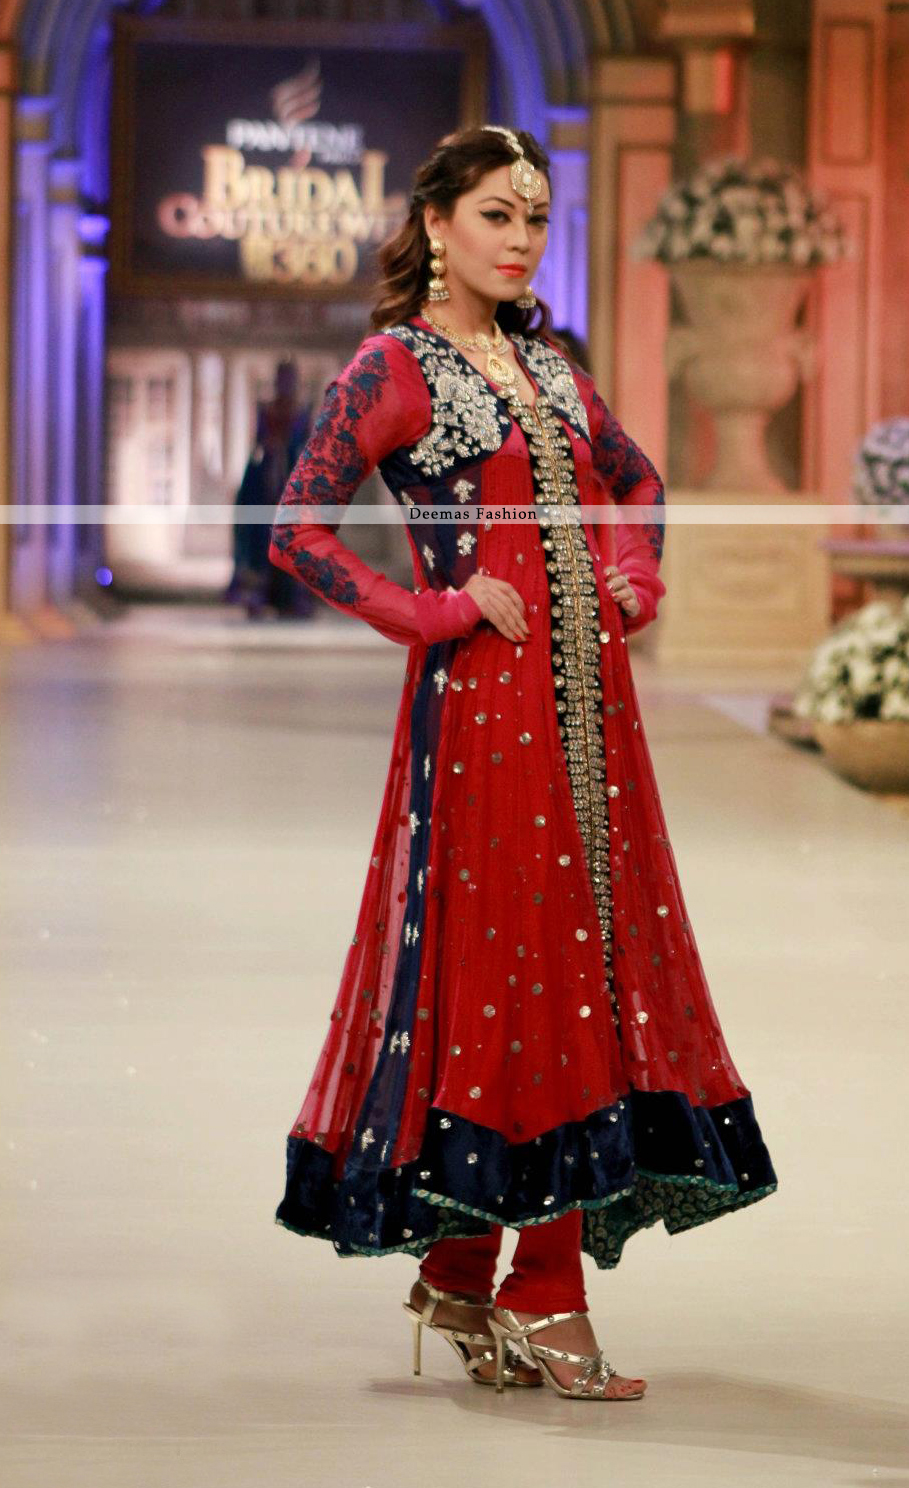 Latest-Formal-Collection-2013-Red-Anarkali-Pishwas-Dress1